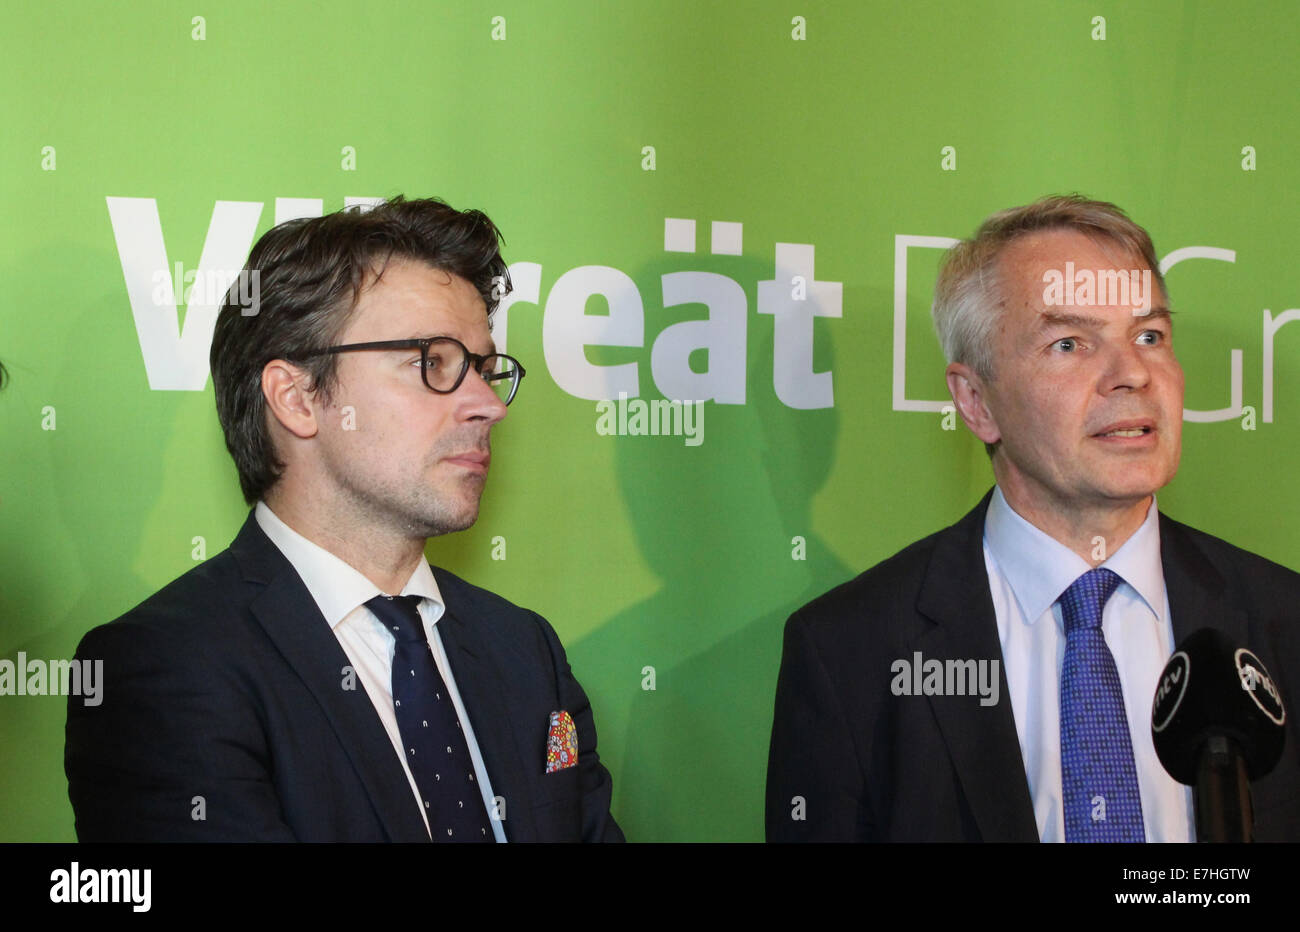 Helsinki, Finland. 18 September, 2014. Finnish Green League leaves the cabinet over dispute about building the new - Stock Image